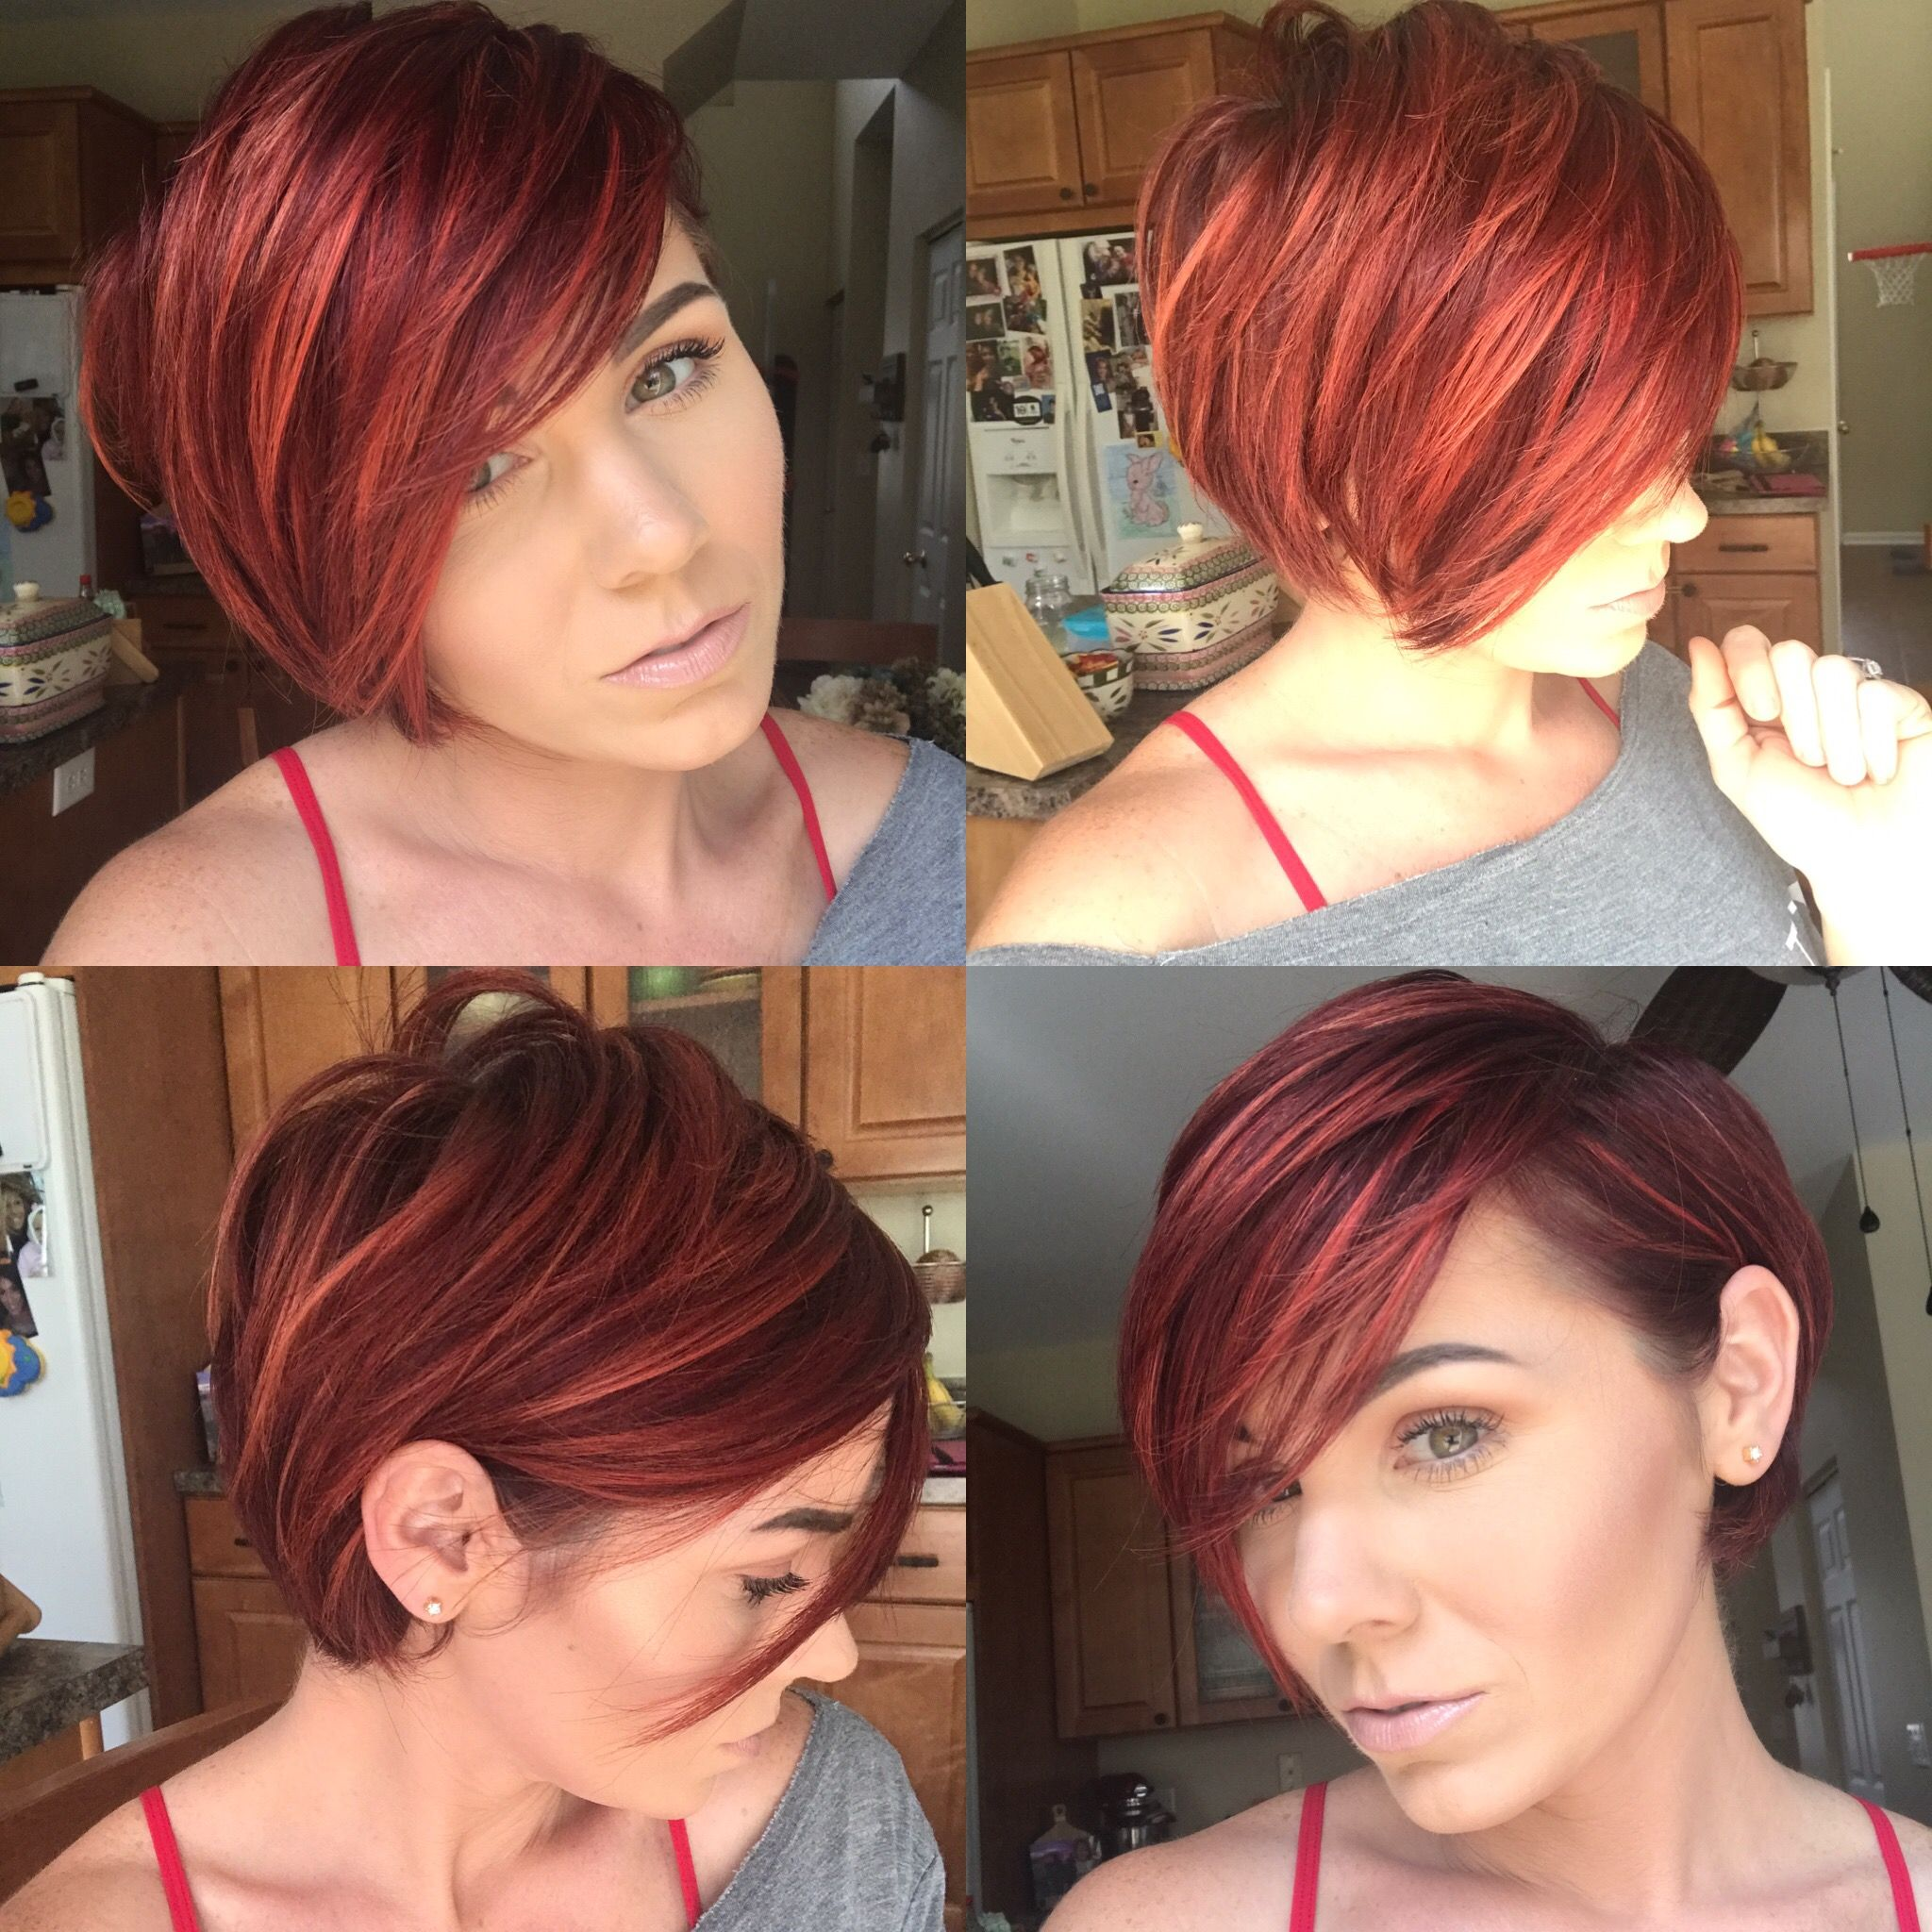 redhair #pixie #bob #shorthair | hairstyles/inspiration in